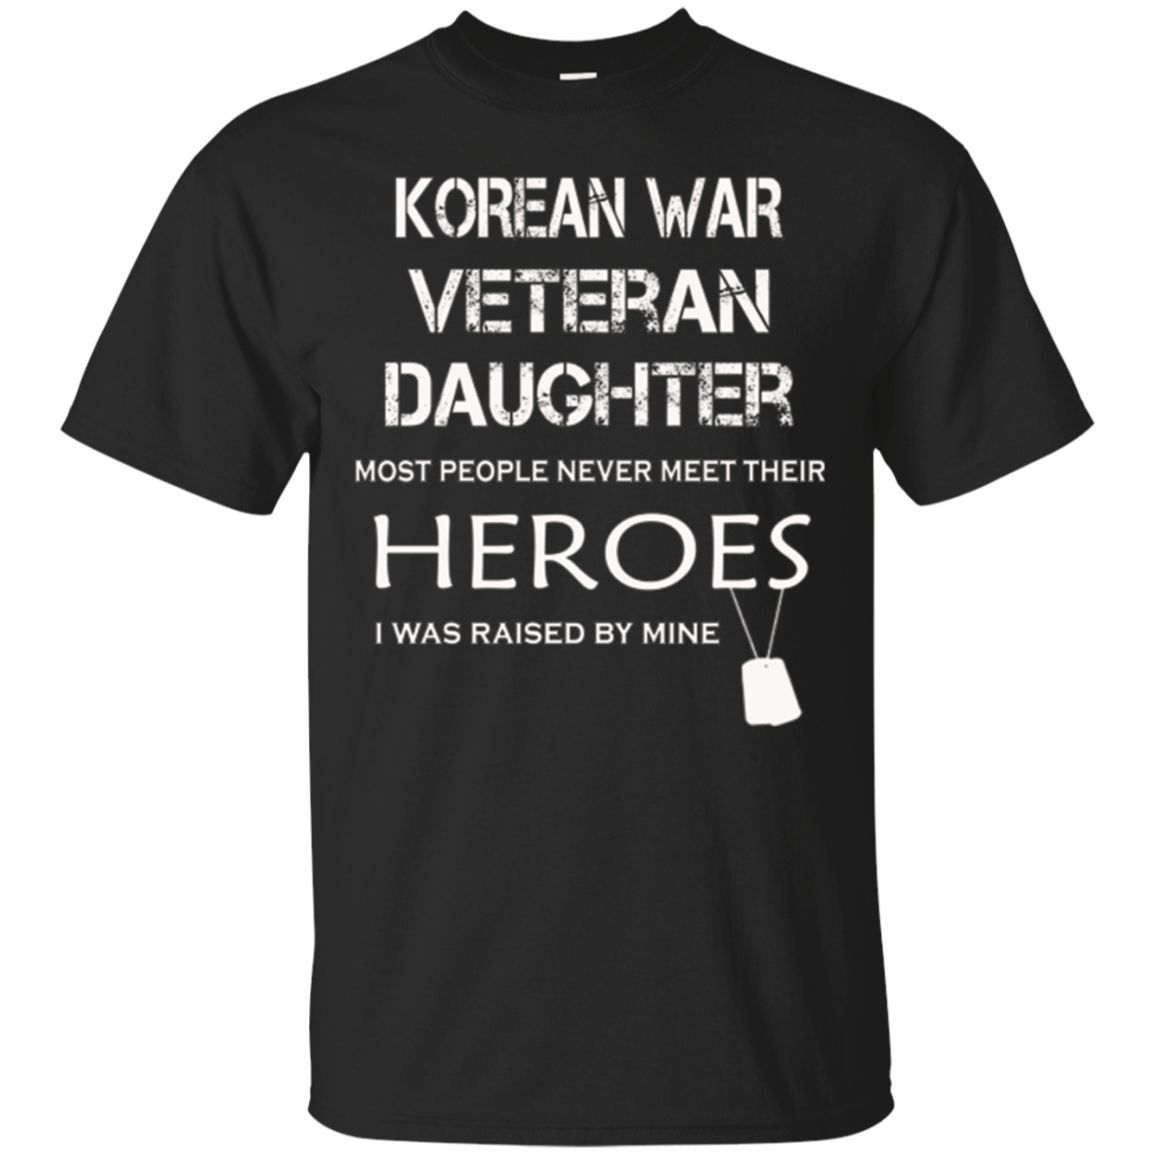 Korean war veteran daughter tshirt